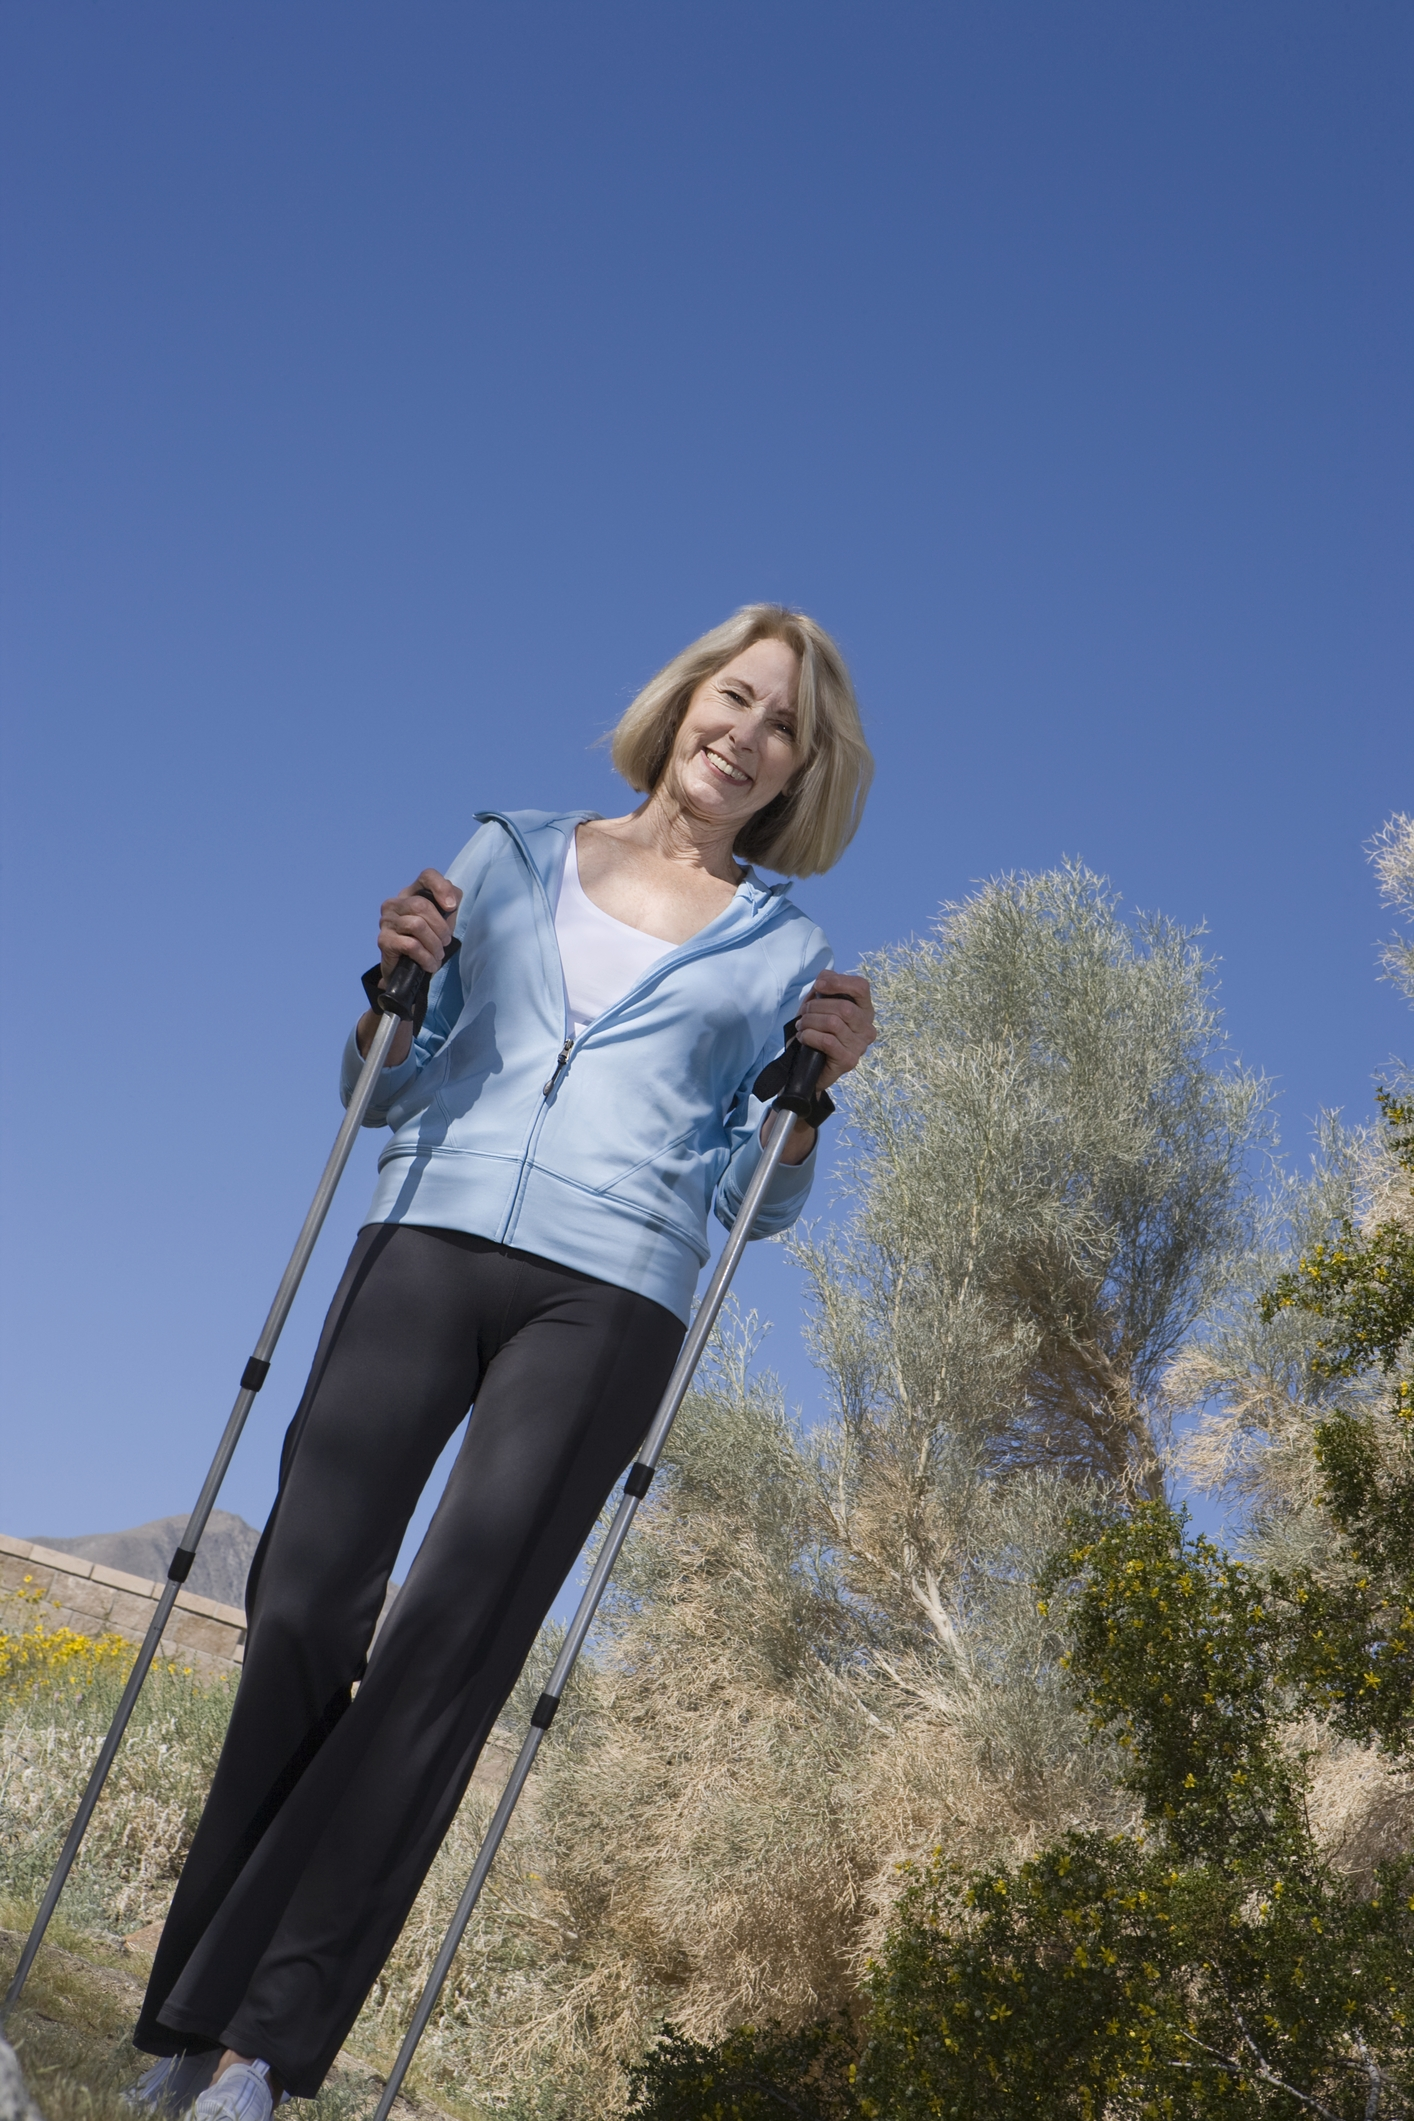 http://www.dreamstime.com/stock-photography-mature-woman-walking-poles-image29664582